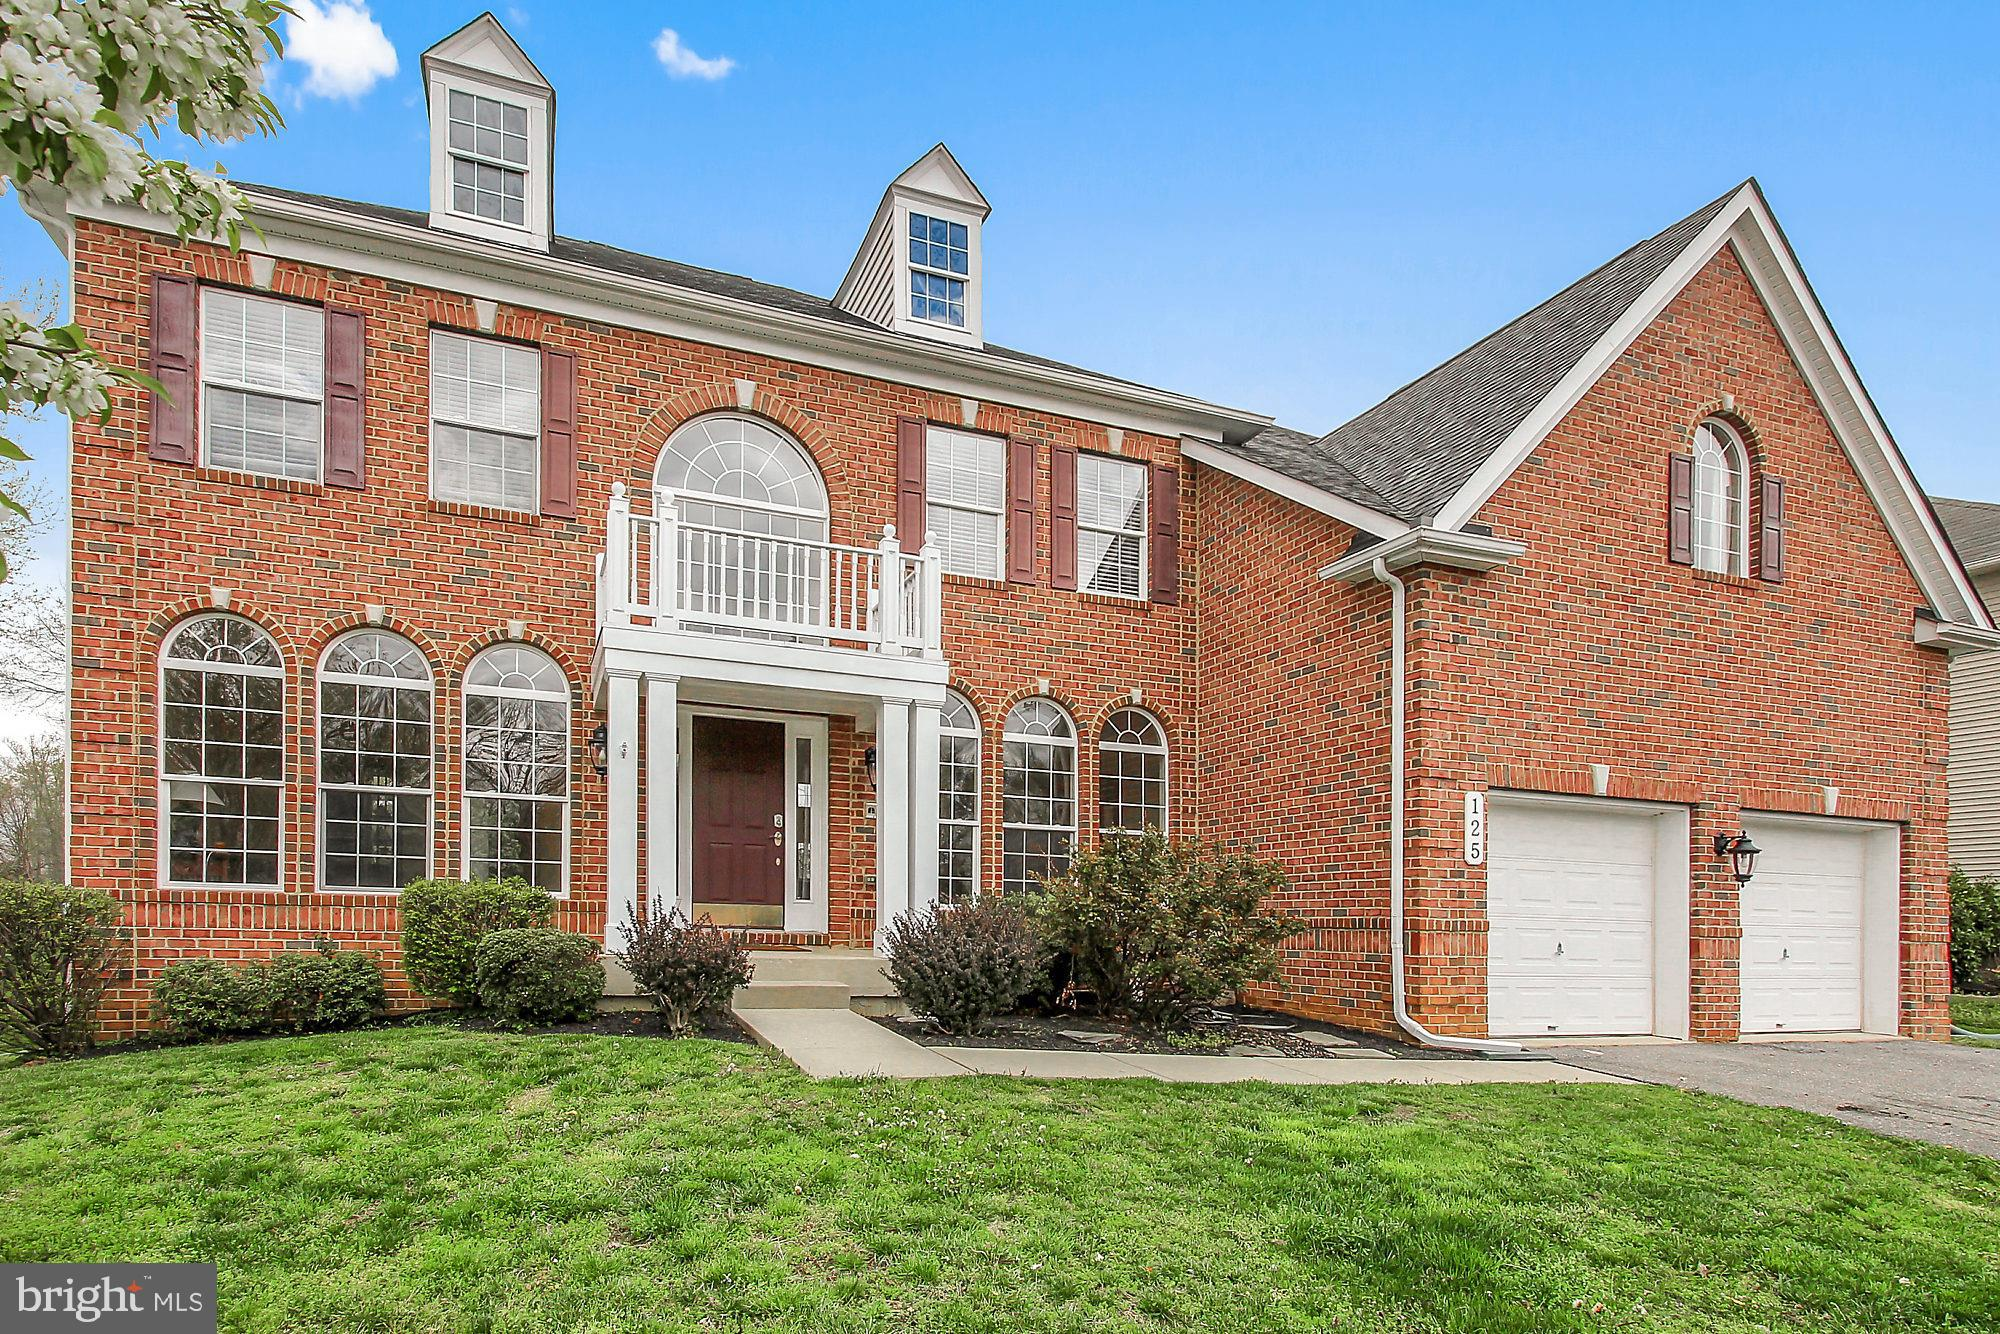 125 BAY CLUB PARKWAY, NORTH EAST, MD 21901